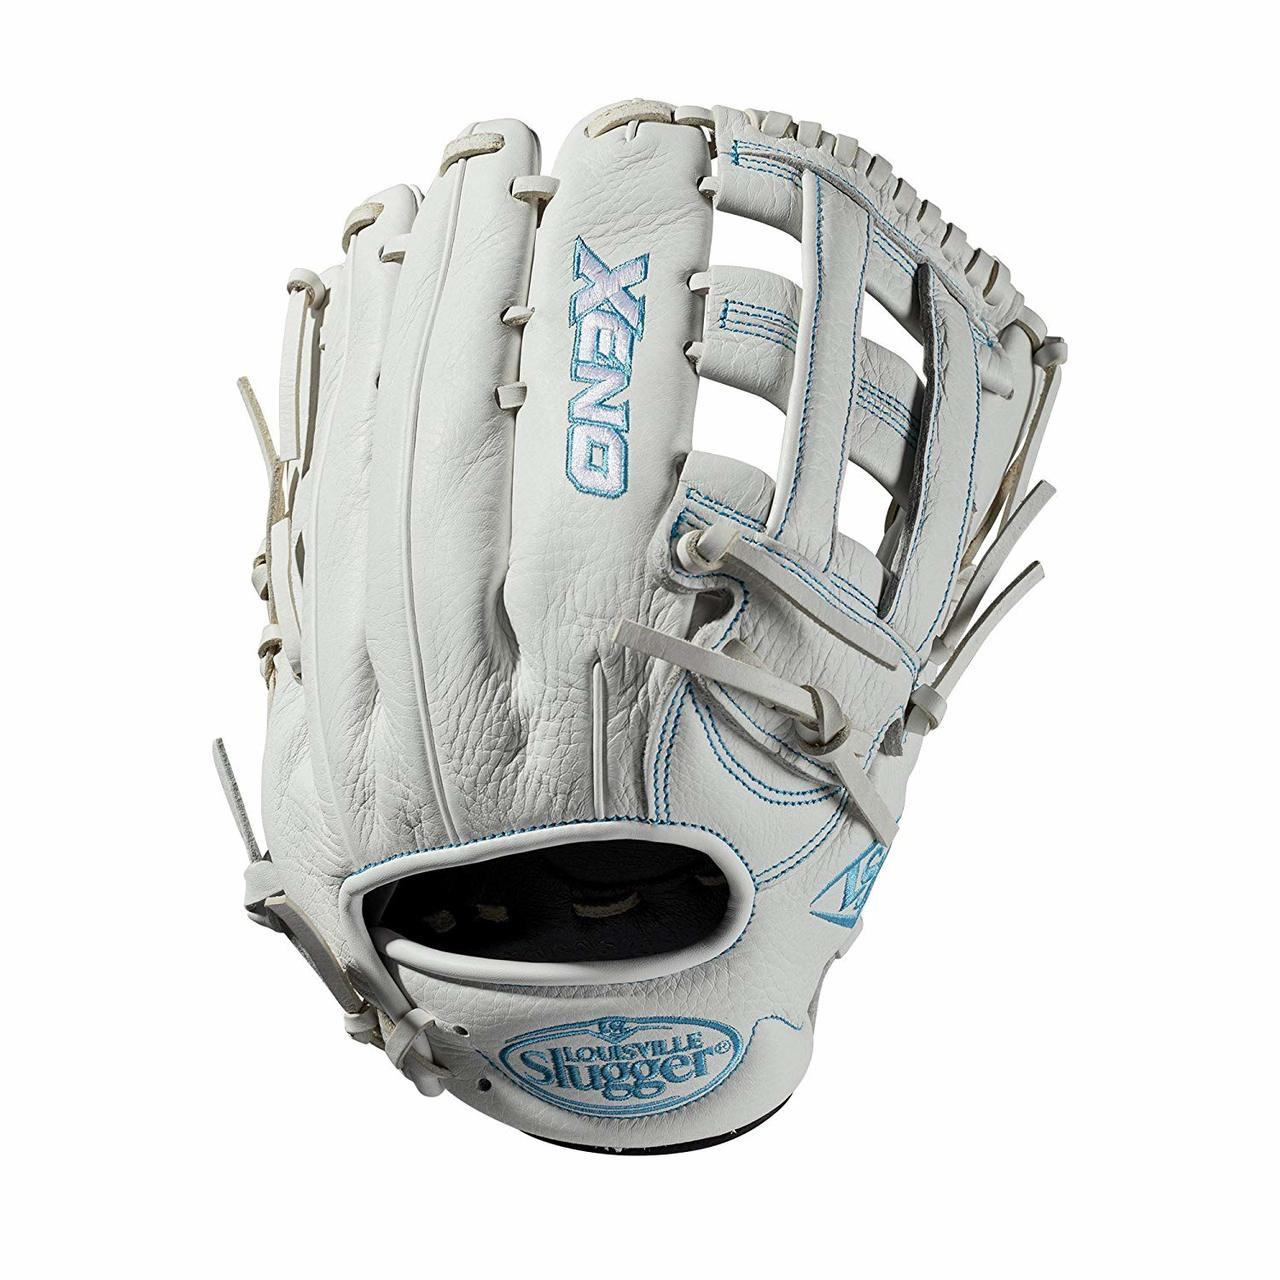 louisville-slugger-2019-xeno-fastpitch-softball-glove-12-75-inch-right-hand-throw WTLXNRF19125-RightHandThrow Louisville 887768711368 12.5 pitchers glove Dual post web Memory foam wrist lining White